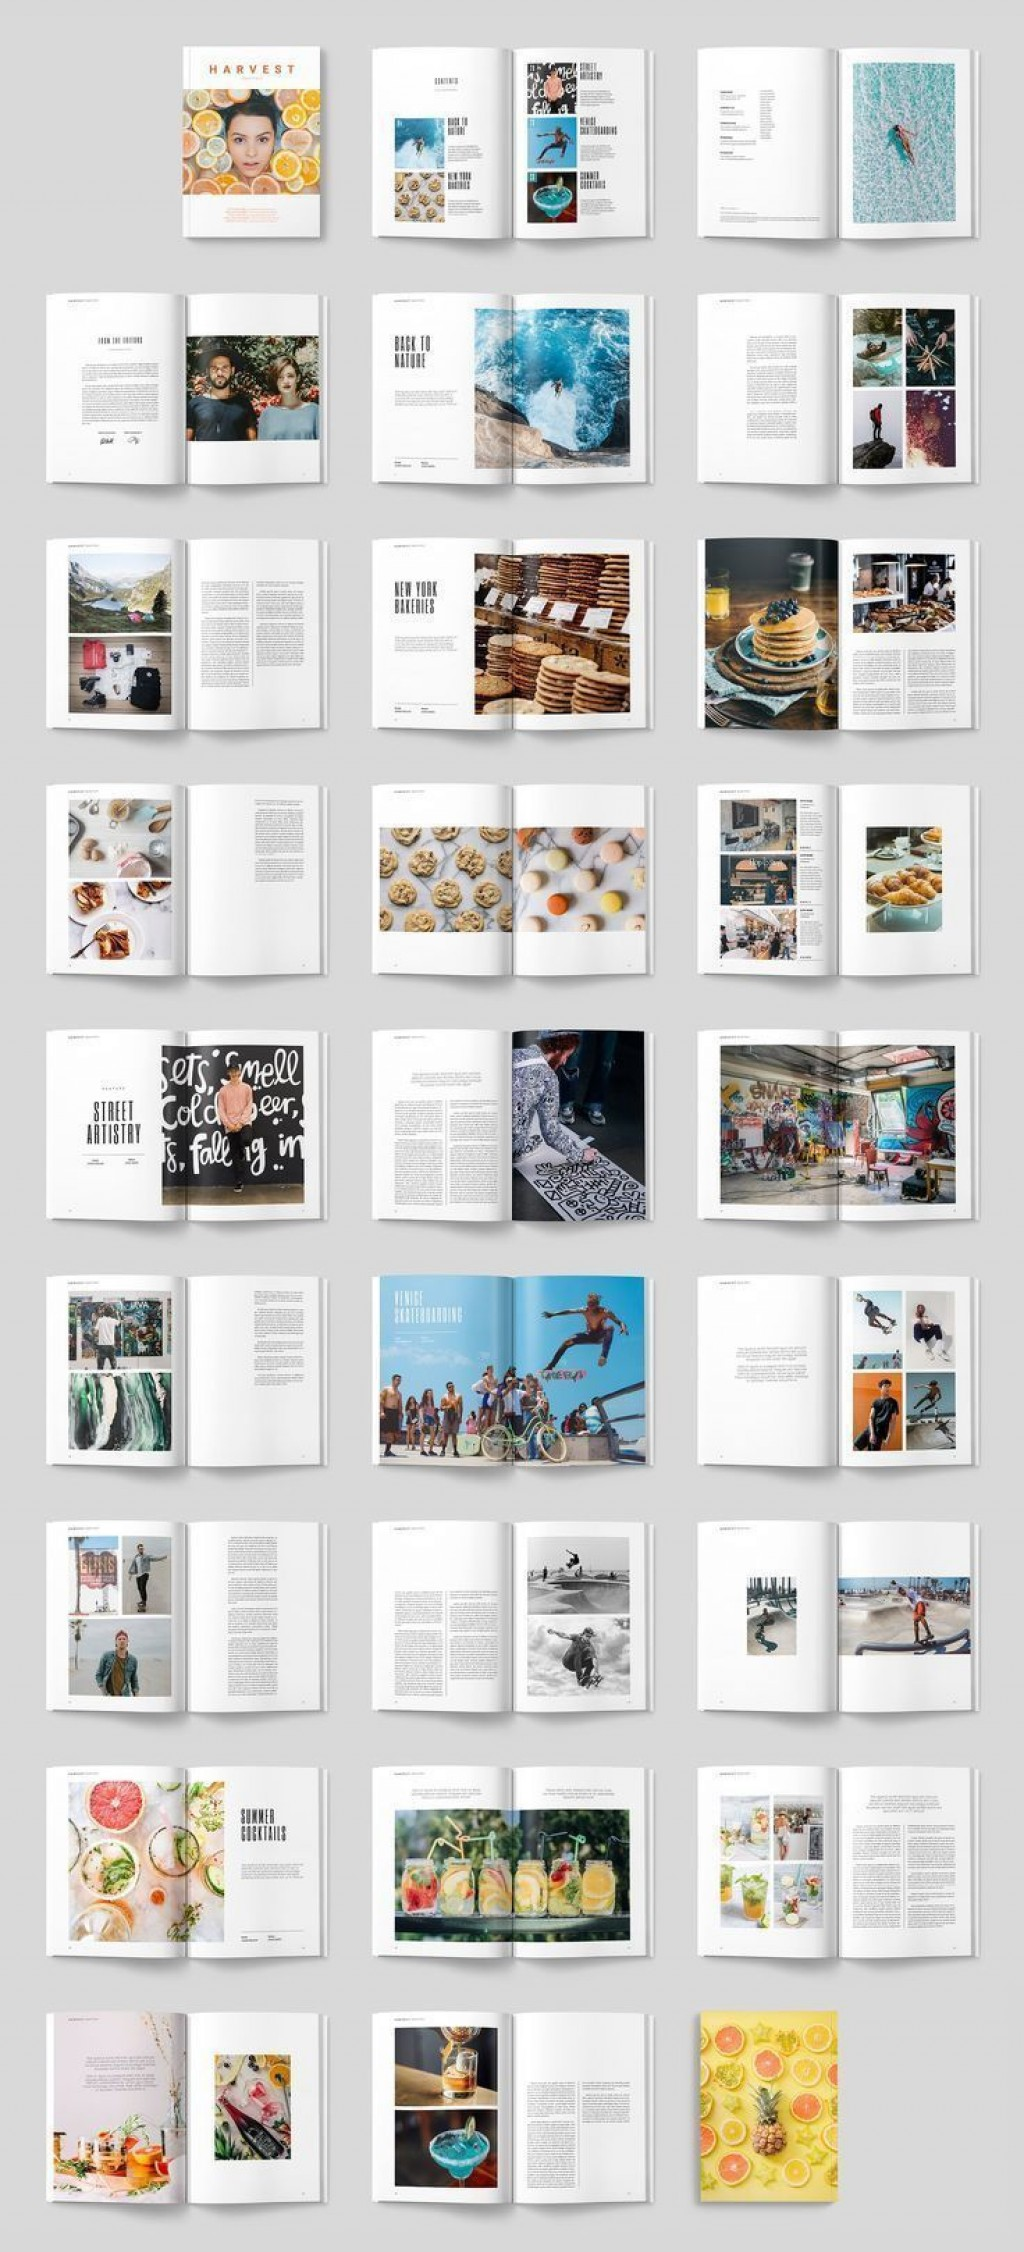 002 Astounding Free Magazine Article Layout Template For Word Example Large